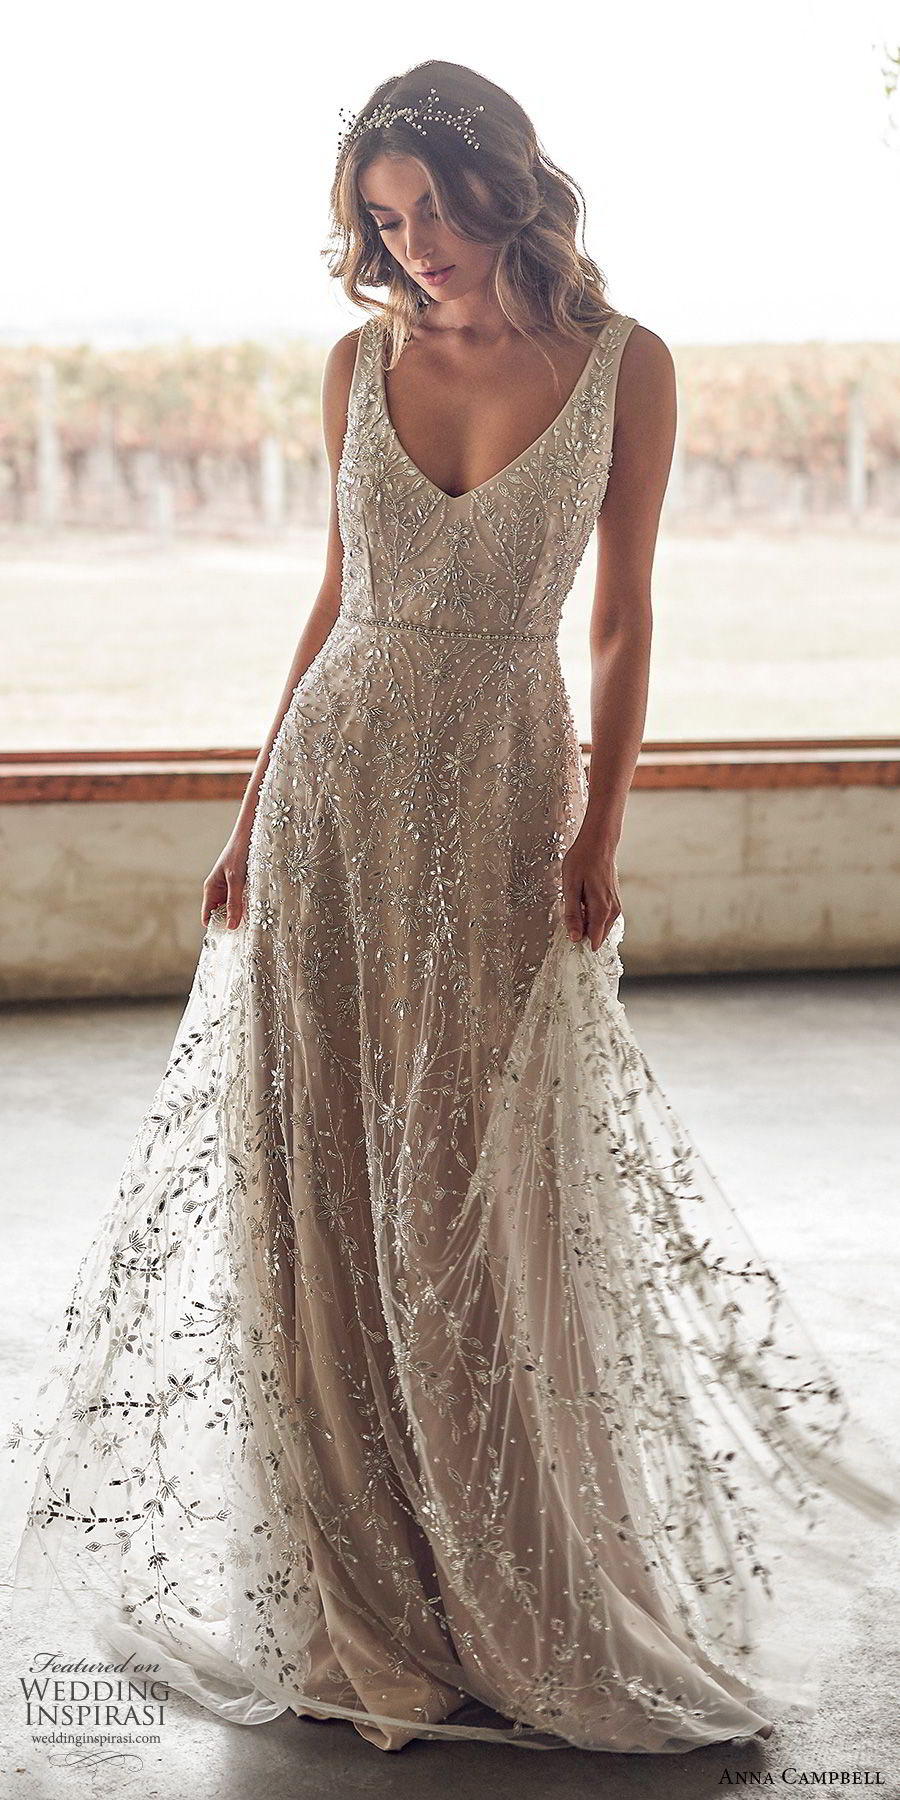 anna campbell 2020 bridal sleeveless beaded thick straps deep v neckline fully embellished ball gown a line wedding dress (8) glitzy glam blush romantic low v back chapel train mv